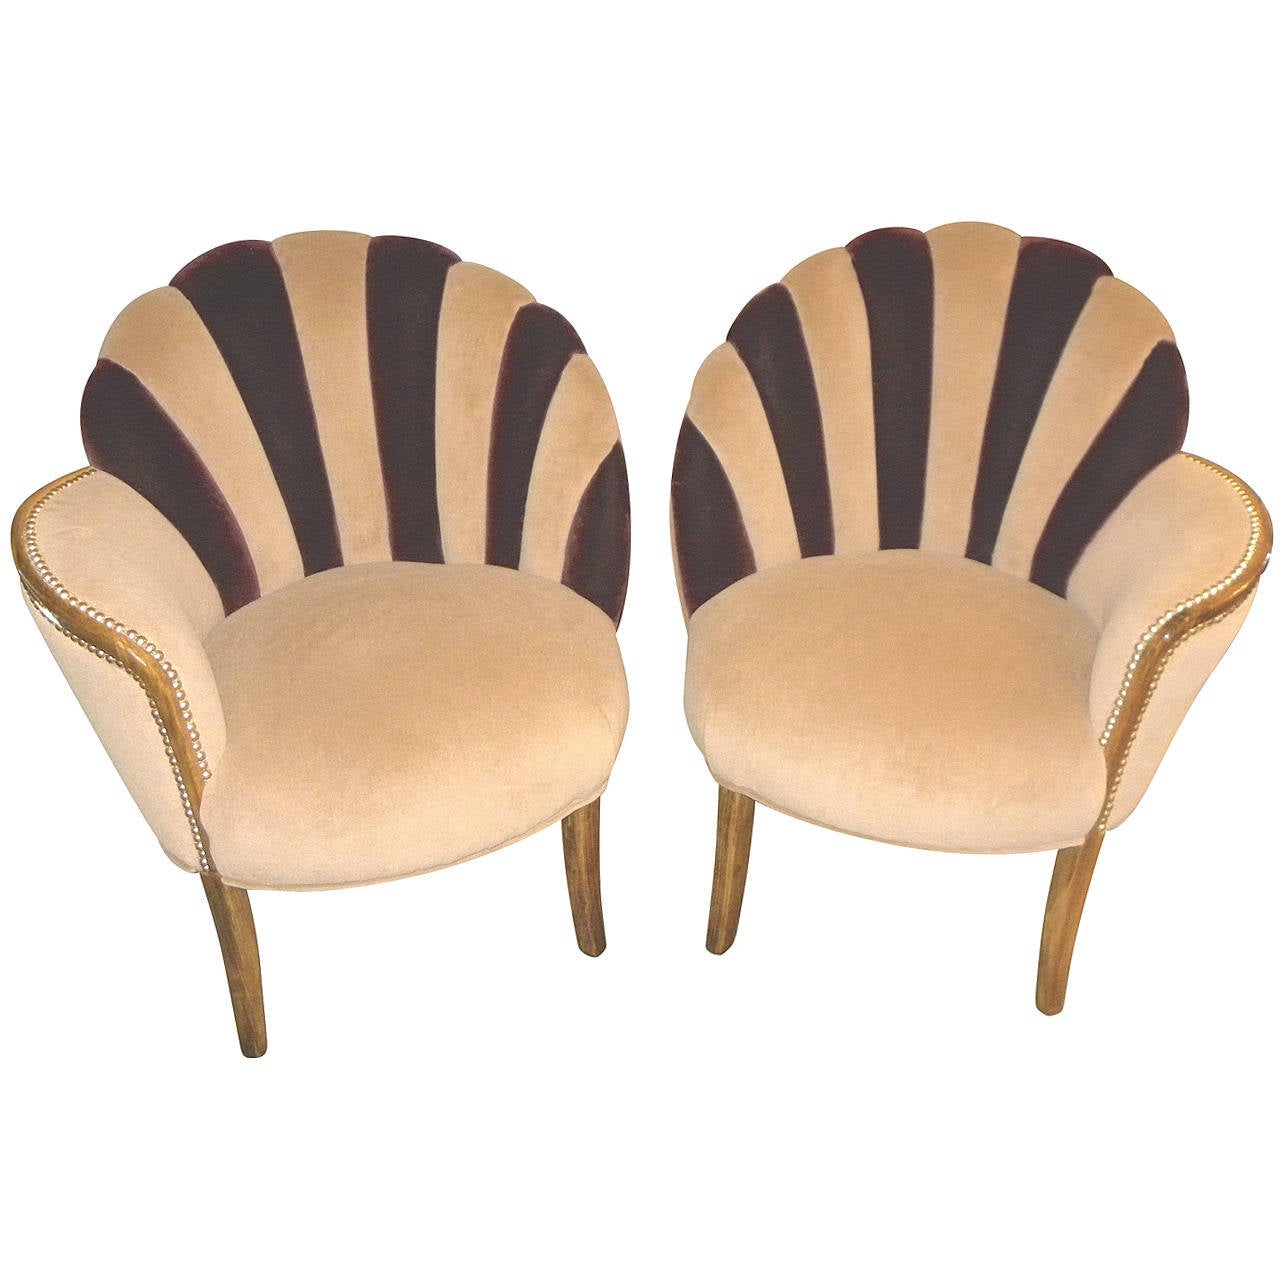 Merveilleux High Style Art Deco Fan Backed Side Chairs For Sale